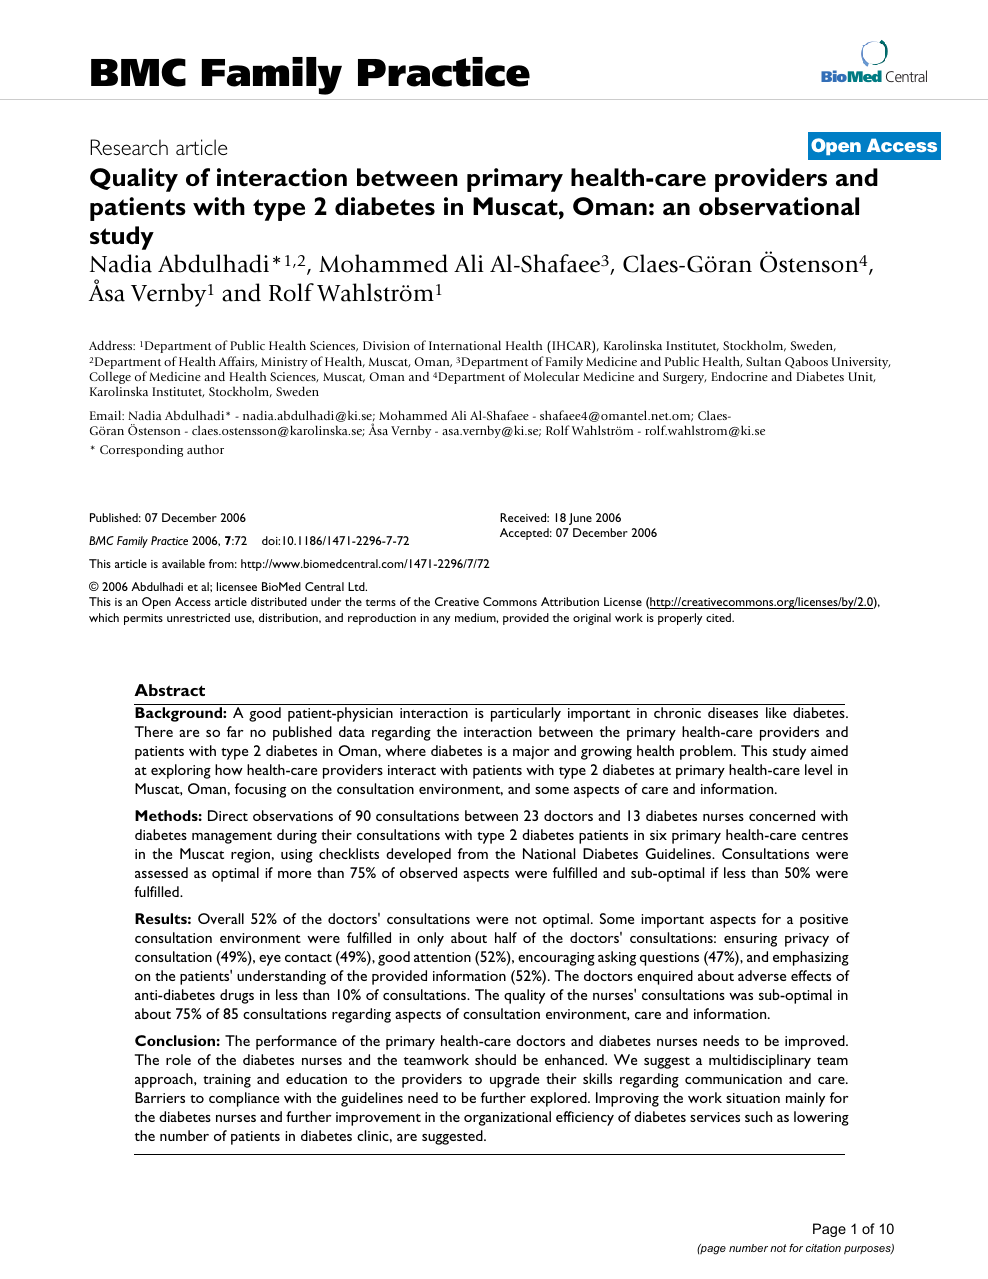 Quality of interaction between primary health-care providers and